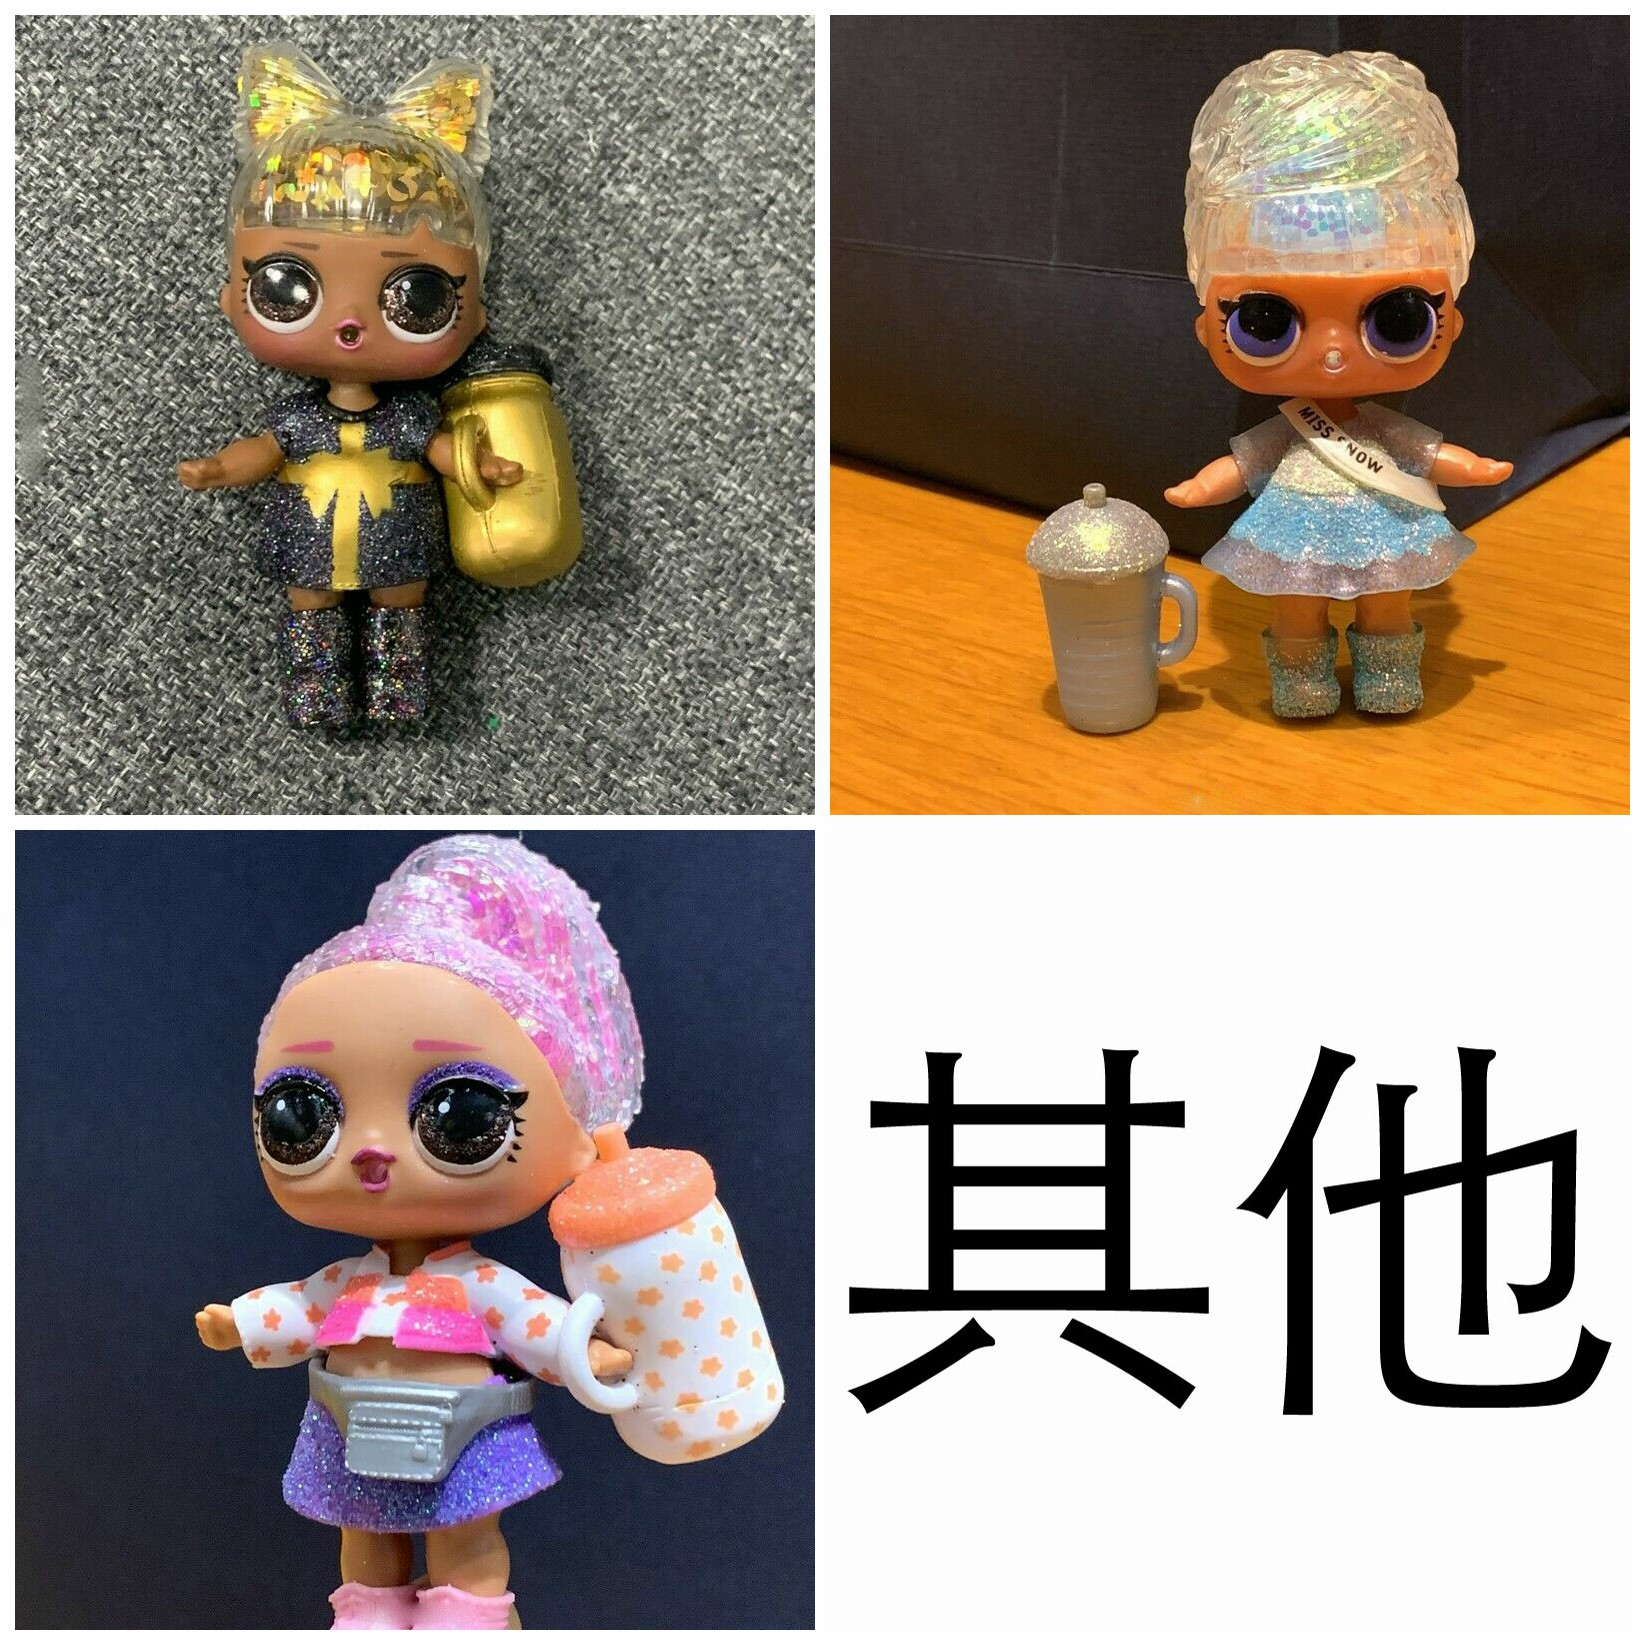 Original Lol Surprise Doll Winter Disco Collection Anime Collection Actie & Toy Figures Model Toys For Children